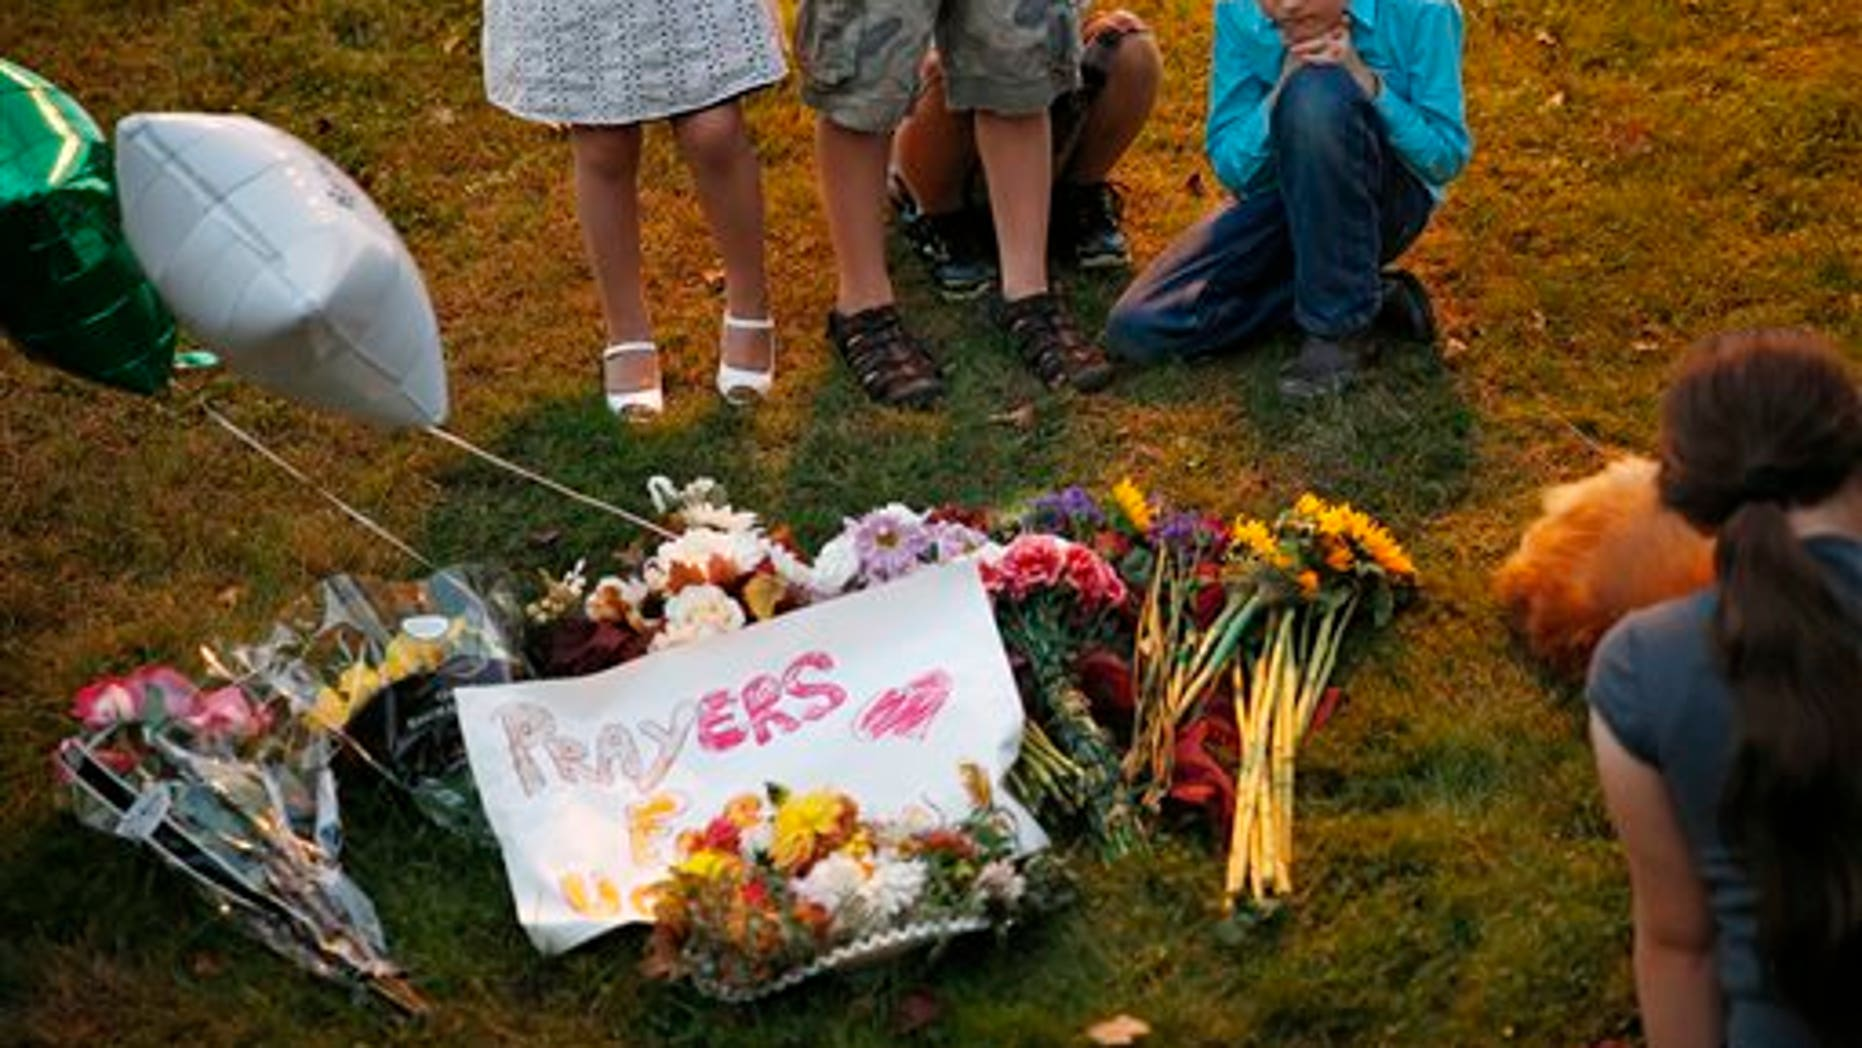 Ethan Hurley, 7, top right, prays with a church group at a makeshift memorial near Snyder Hall at Umpqua Community College, Sunday, Oct. 4, 2015, in Roseburg, Ore. Armed suspect Chris Harper-Mercer on Thursday killed multiple people and wounded several others before taking his own life at Snyder Hall. (AP Photo/John Locher)